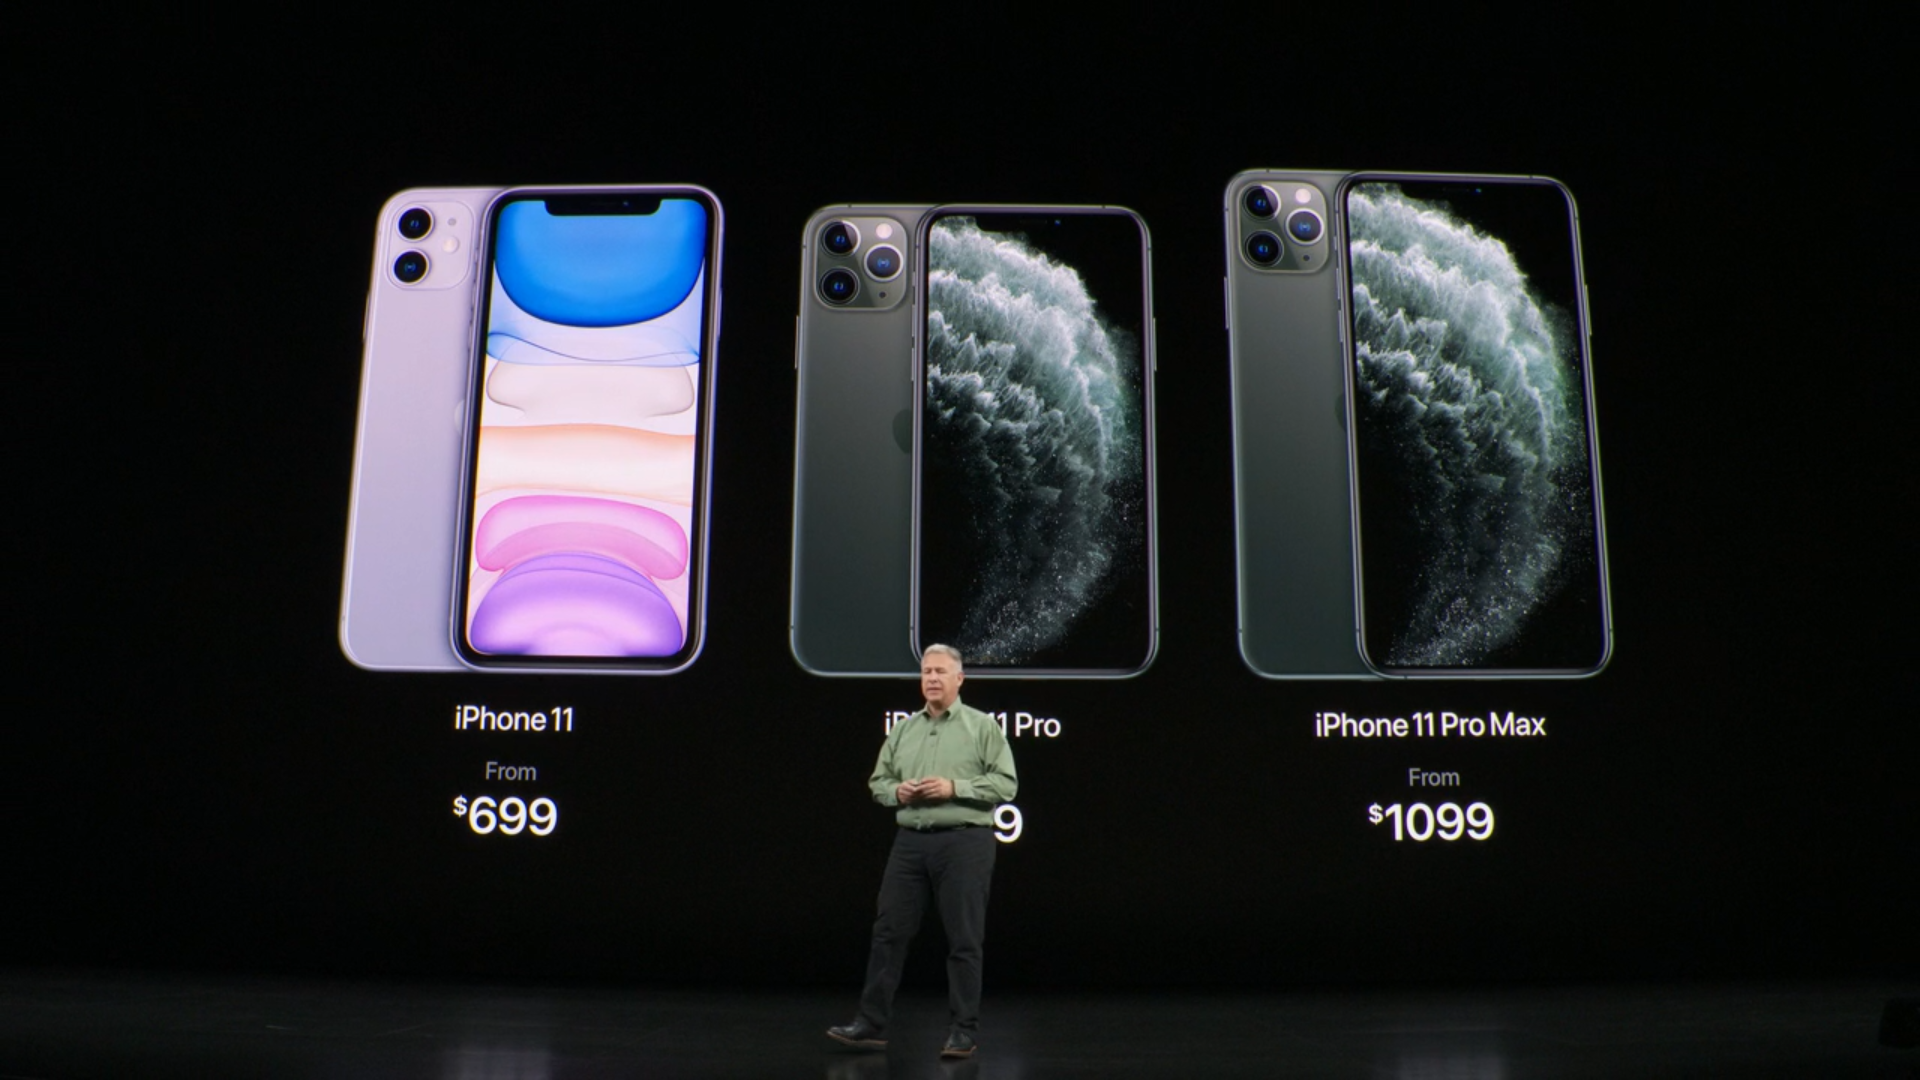 Apple launches iPhone 11, 11 Pro and 11 Pro Max smartphones with new A13 Bionic chipset and square camera modules 6